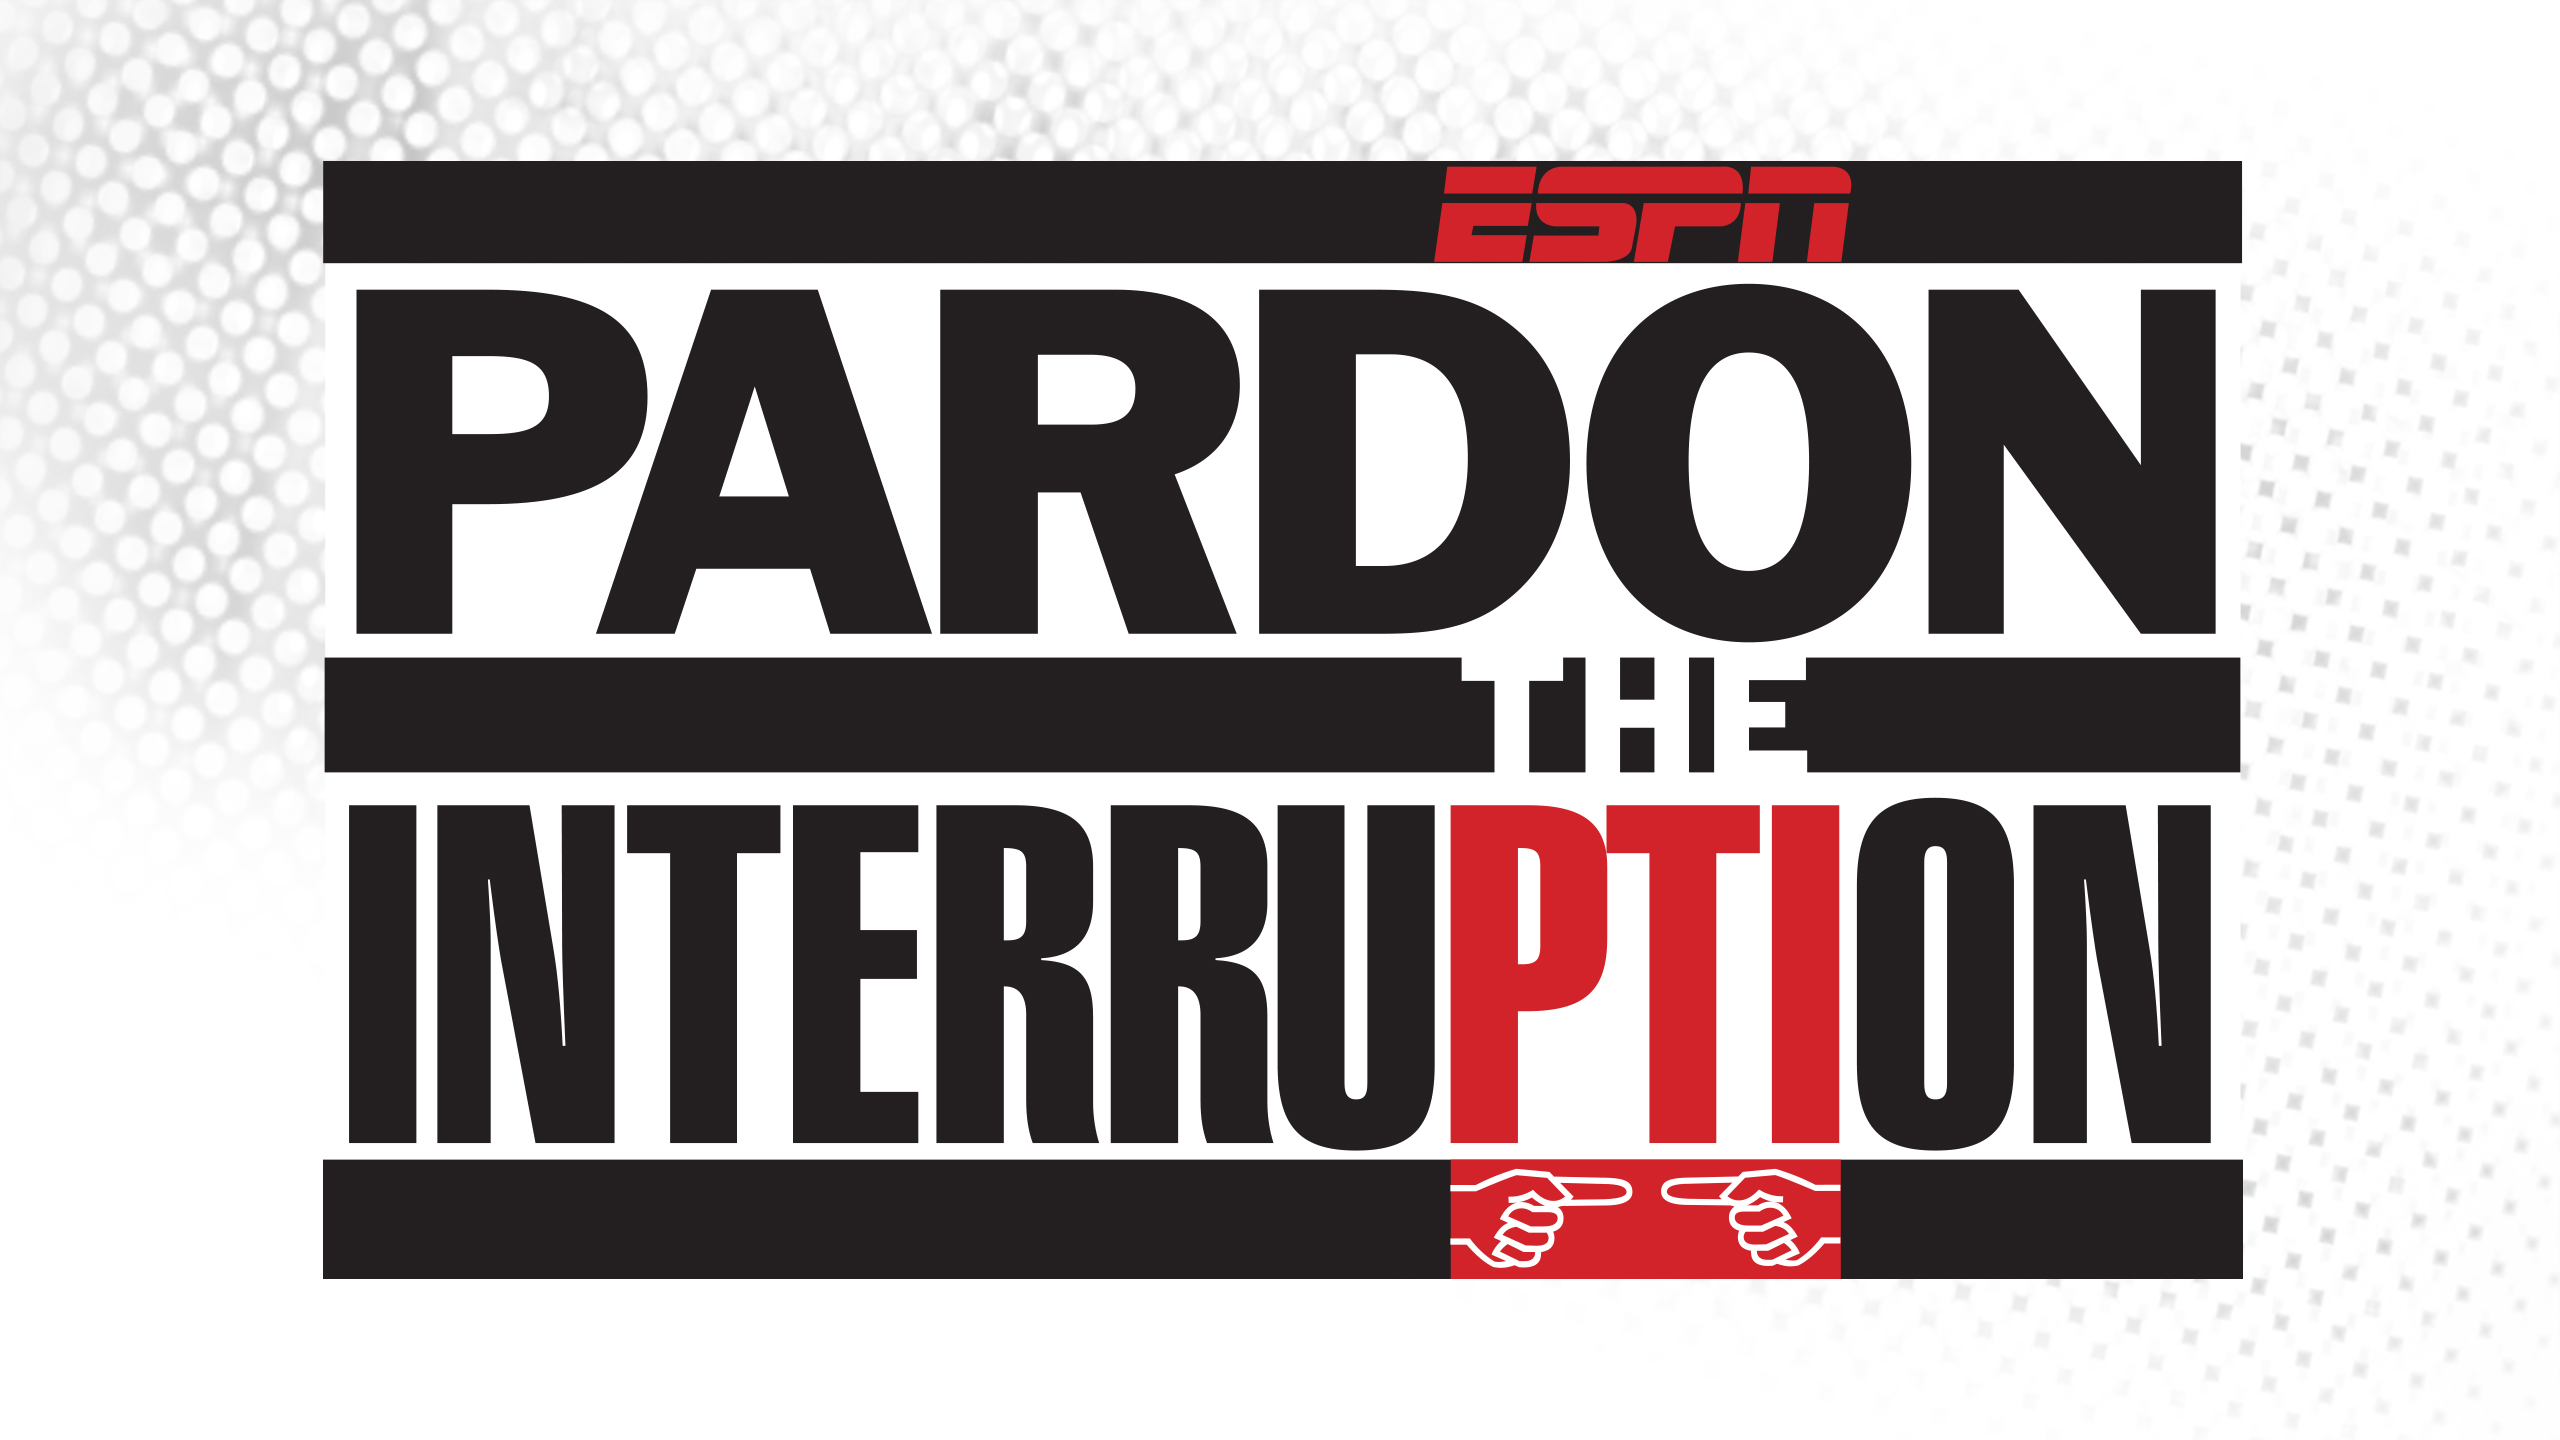 Mon, 3/25 - Pardon The Interruption